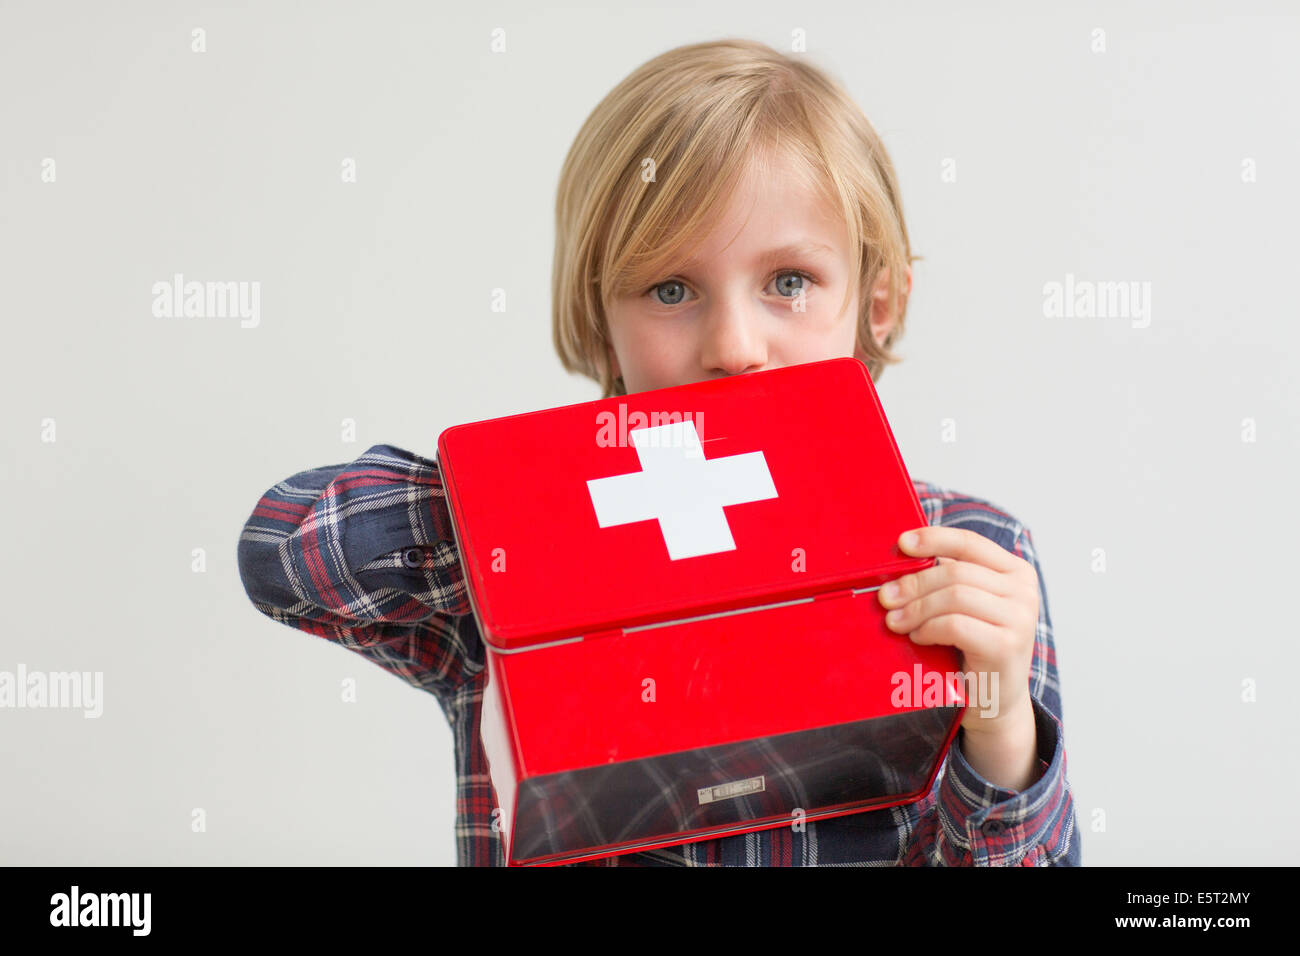 7 year old boy playing with drugs : poisoning hazard. - Stock Image